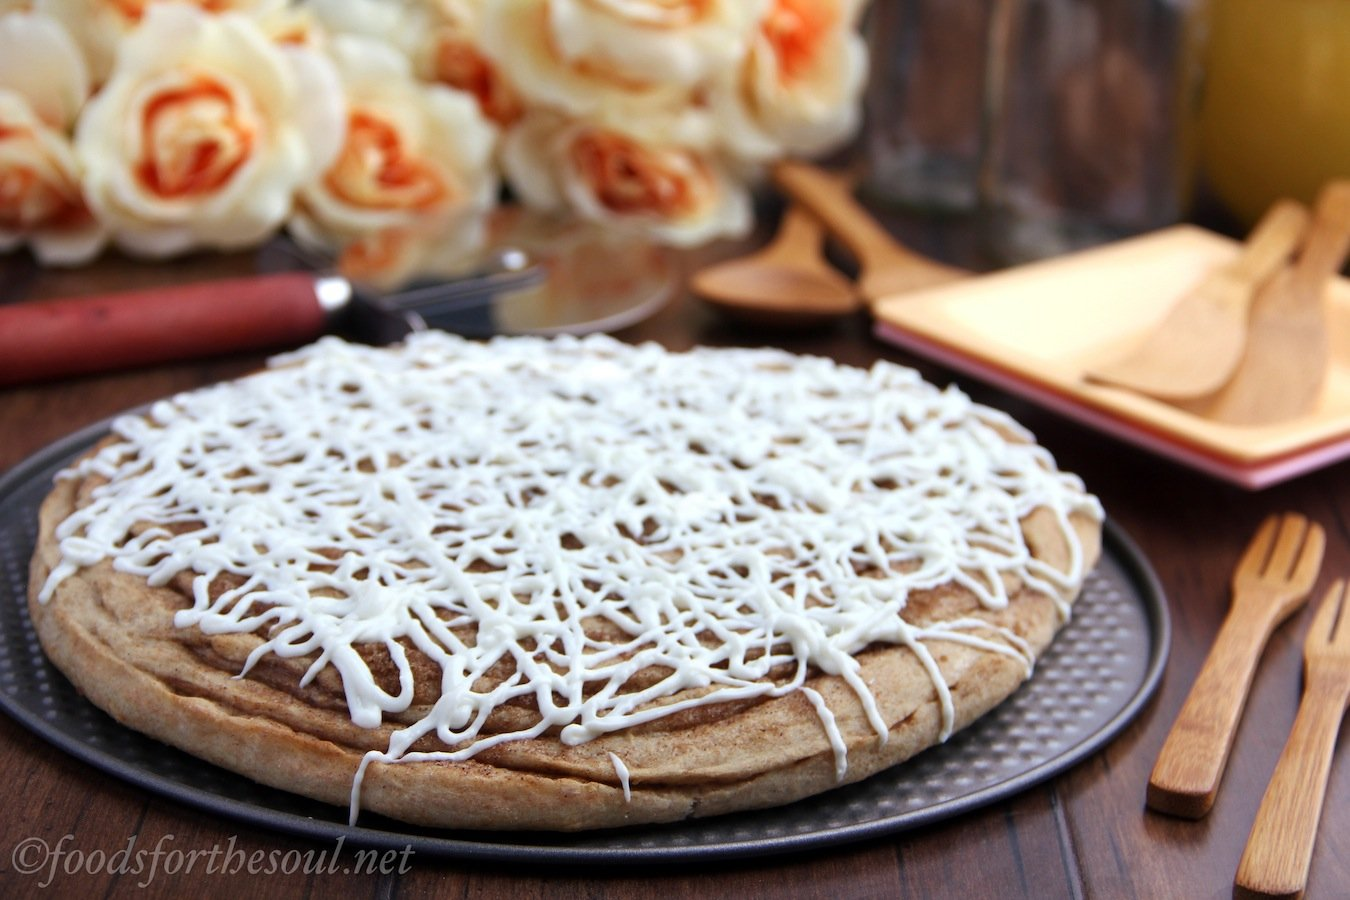 Recipe: Cinnamon roll pizza